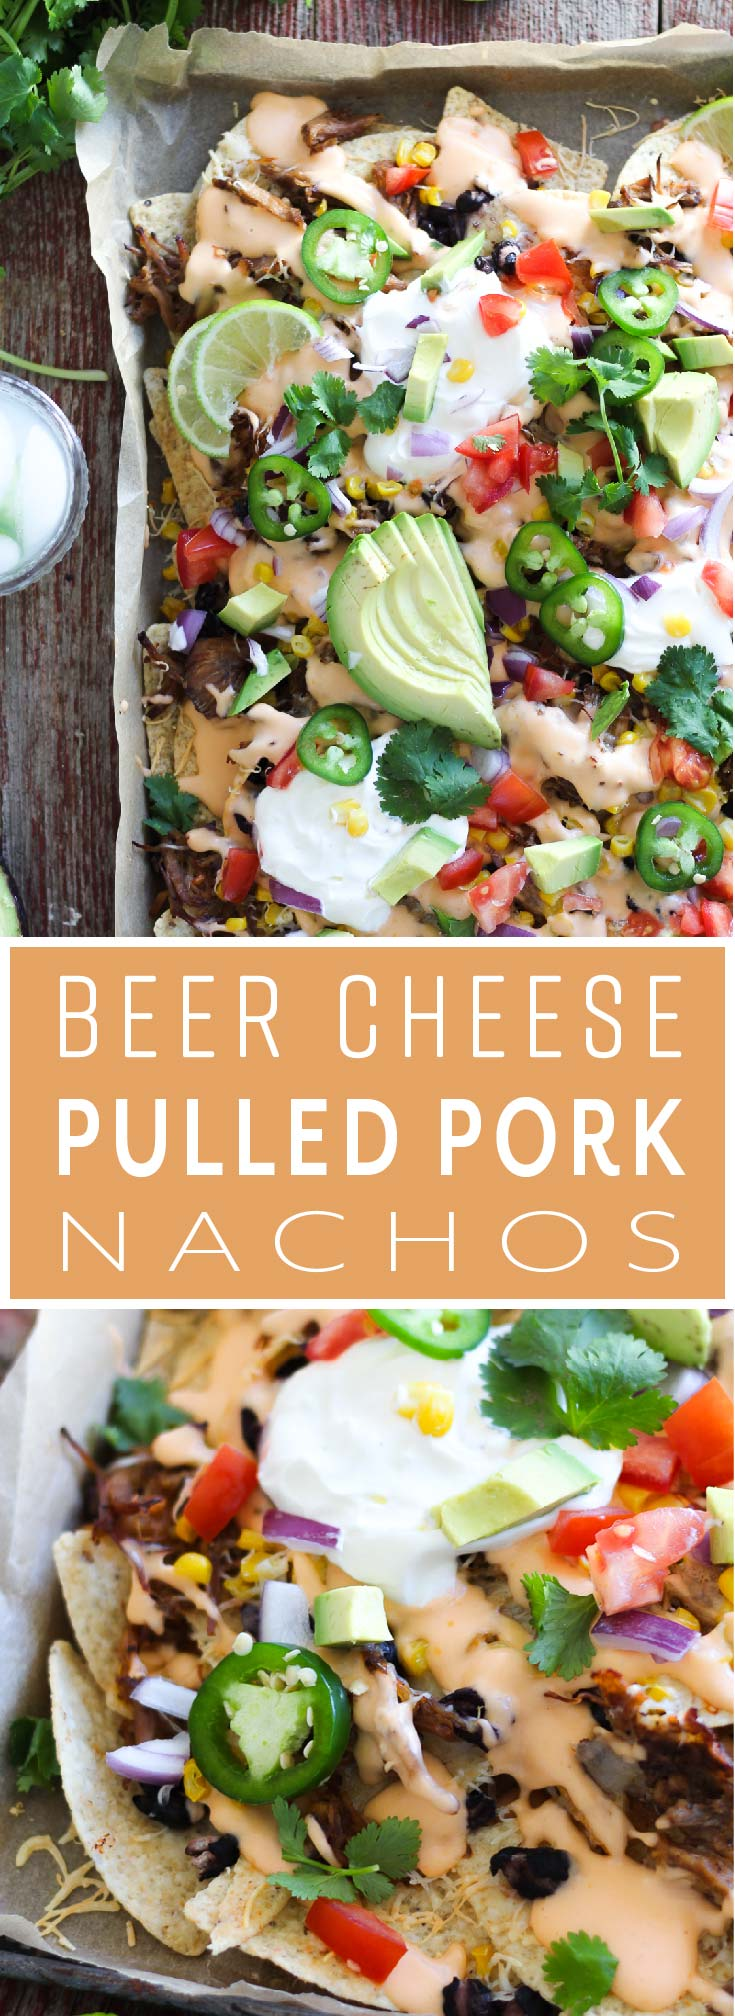 Mouthwatering, easy-to-make sheet pan nachos that are perfect for any party! Your favorite tortilla chips covered with pulled pork and black beans and smothered in beer cheese sauce and loaded with toppings!